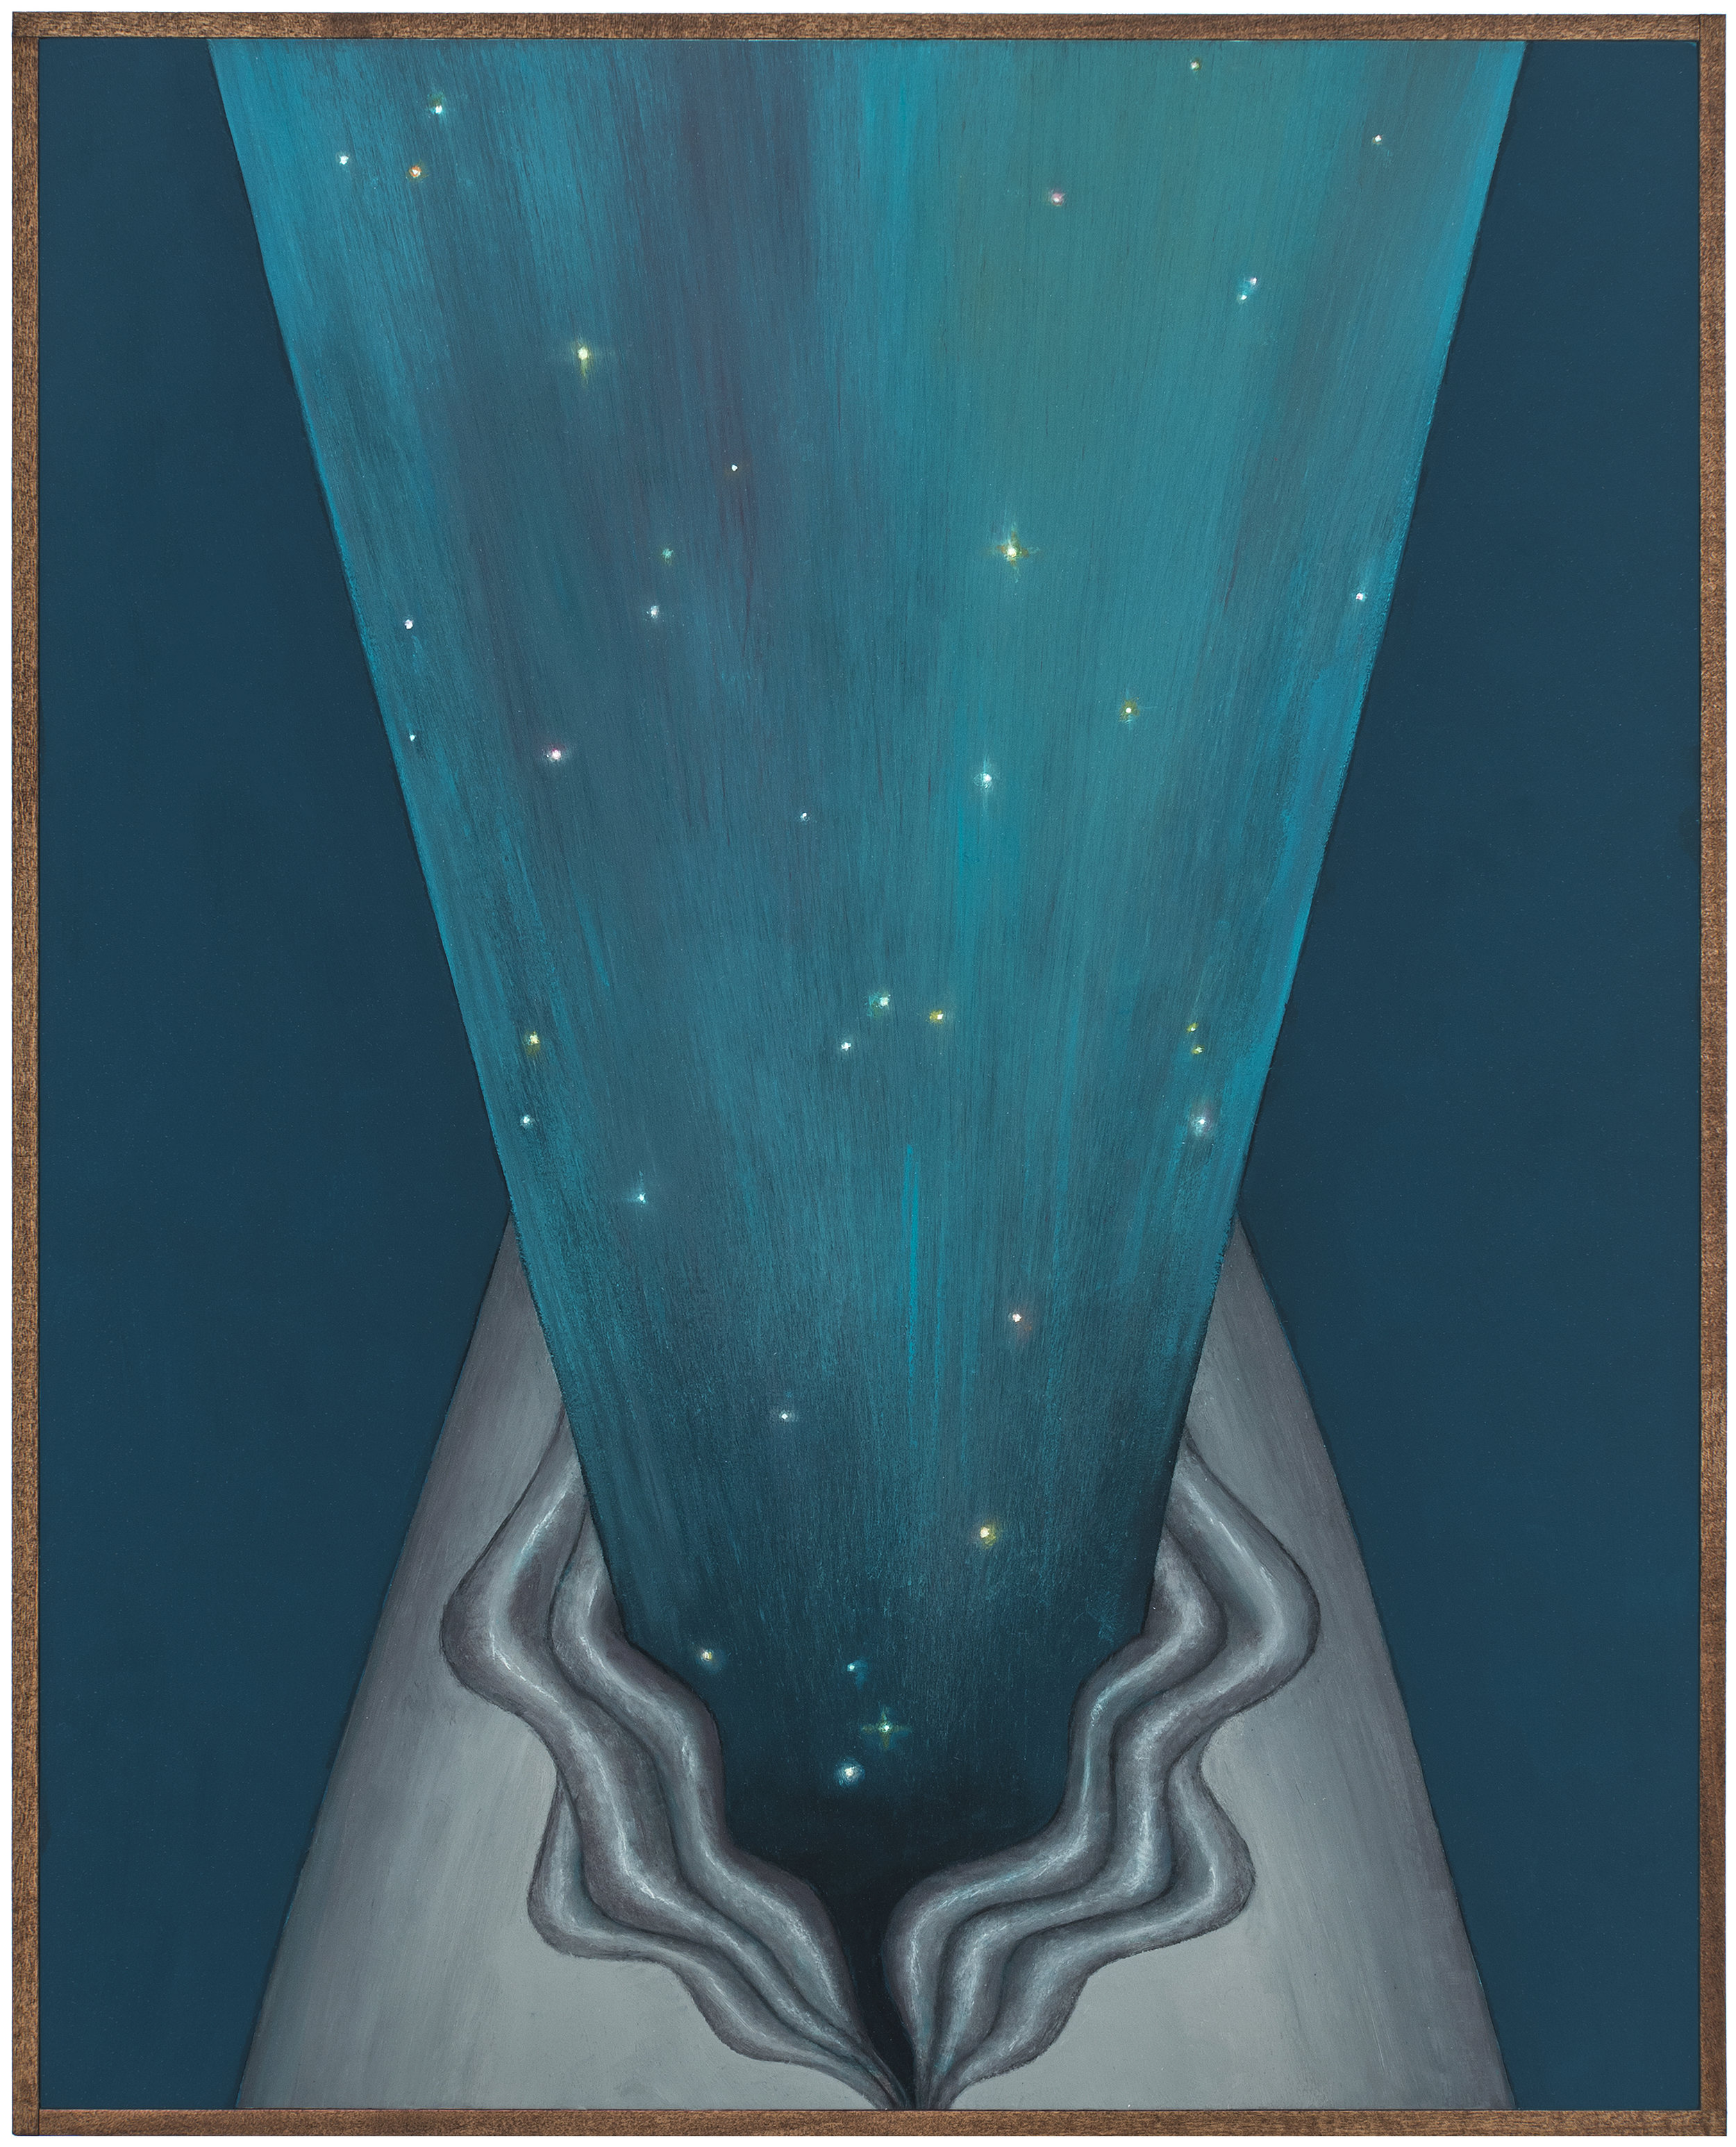 Auroral Slit , 2018 Oil on board, wood frame 16 x 20 inches